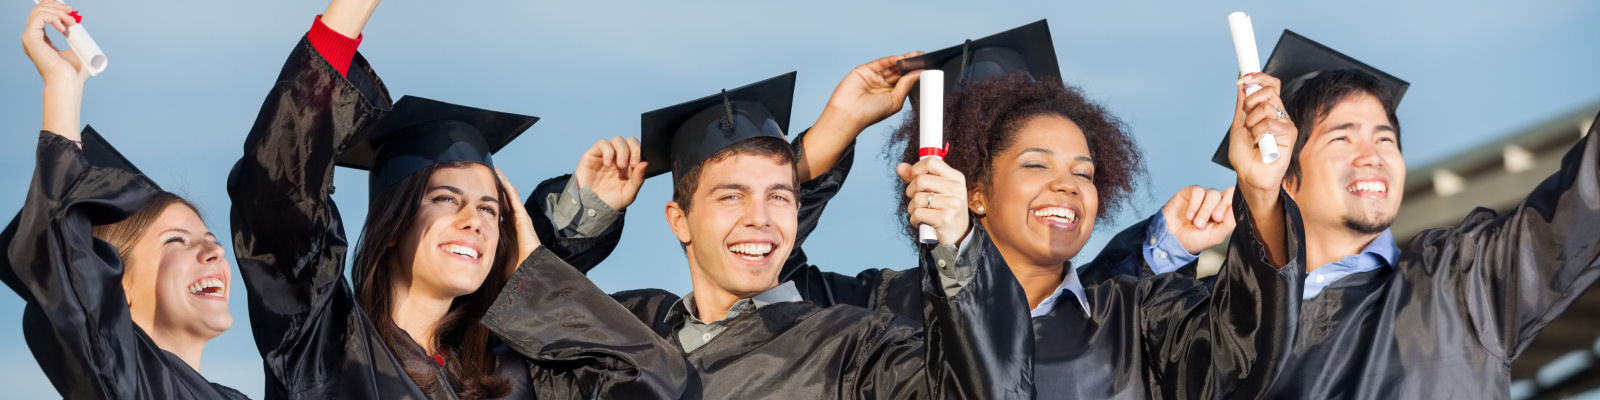 graduate with a diploma from cj college, contact us for a free career consultation